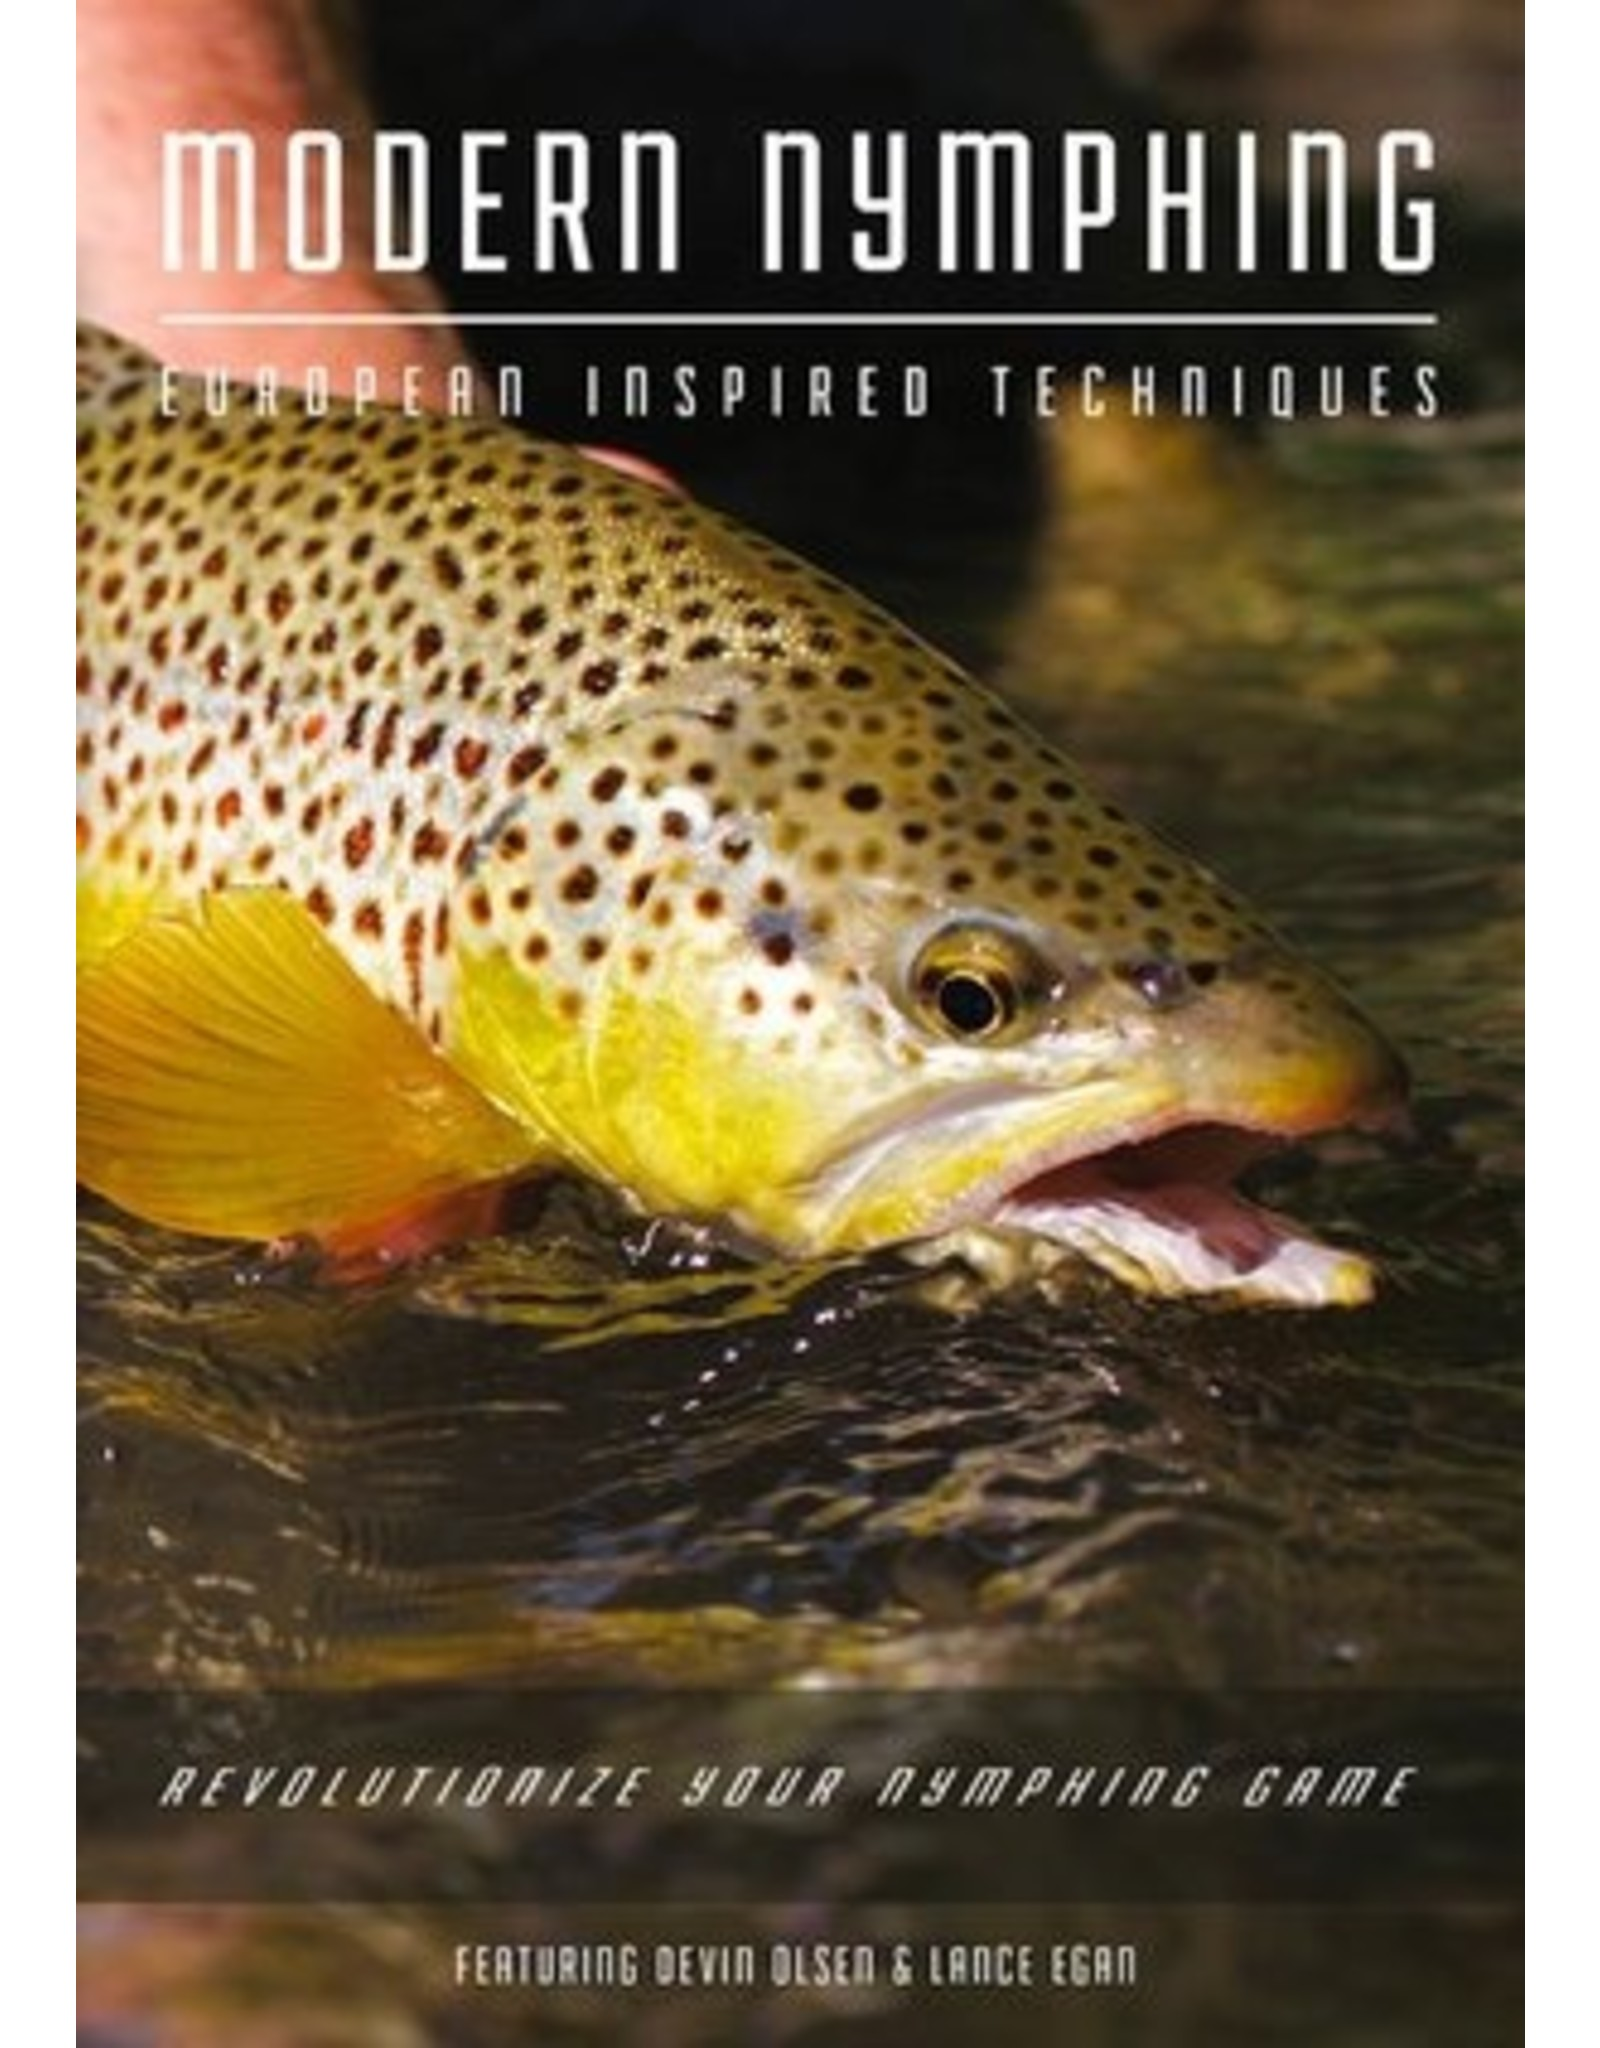 European Inspired Nymphing Techniques (Featuring Fly Fishing Team USA's Devin Olsen & Lance Egan)